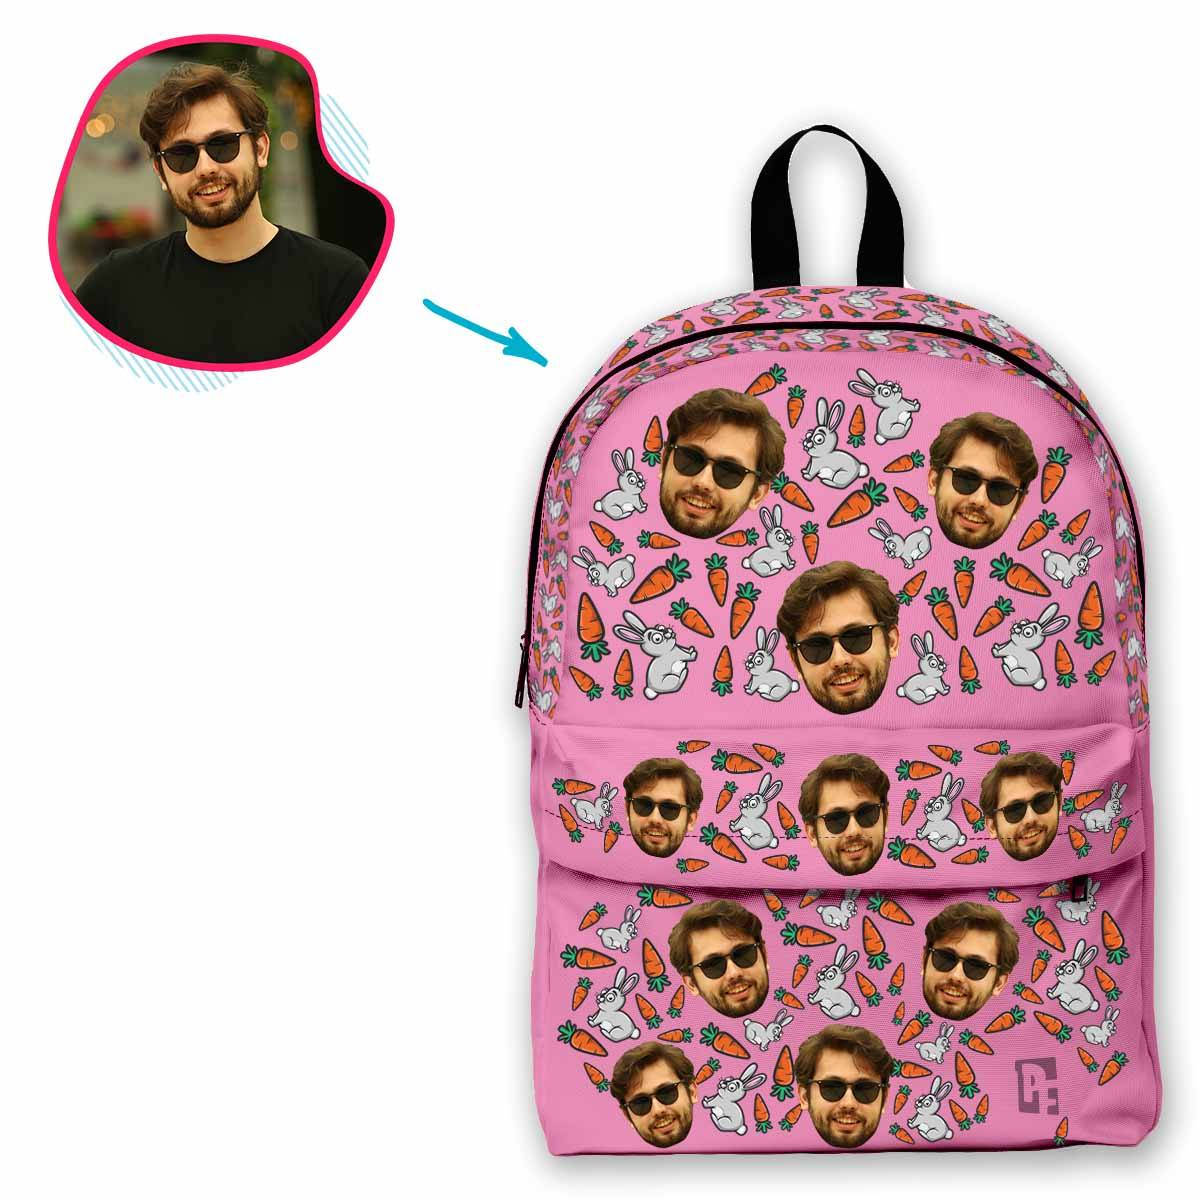 pink Bunny classic backpack personalized with photo of face printed on it